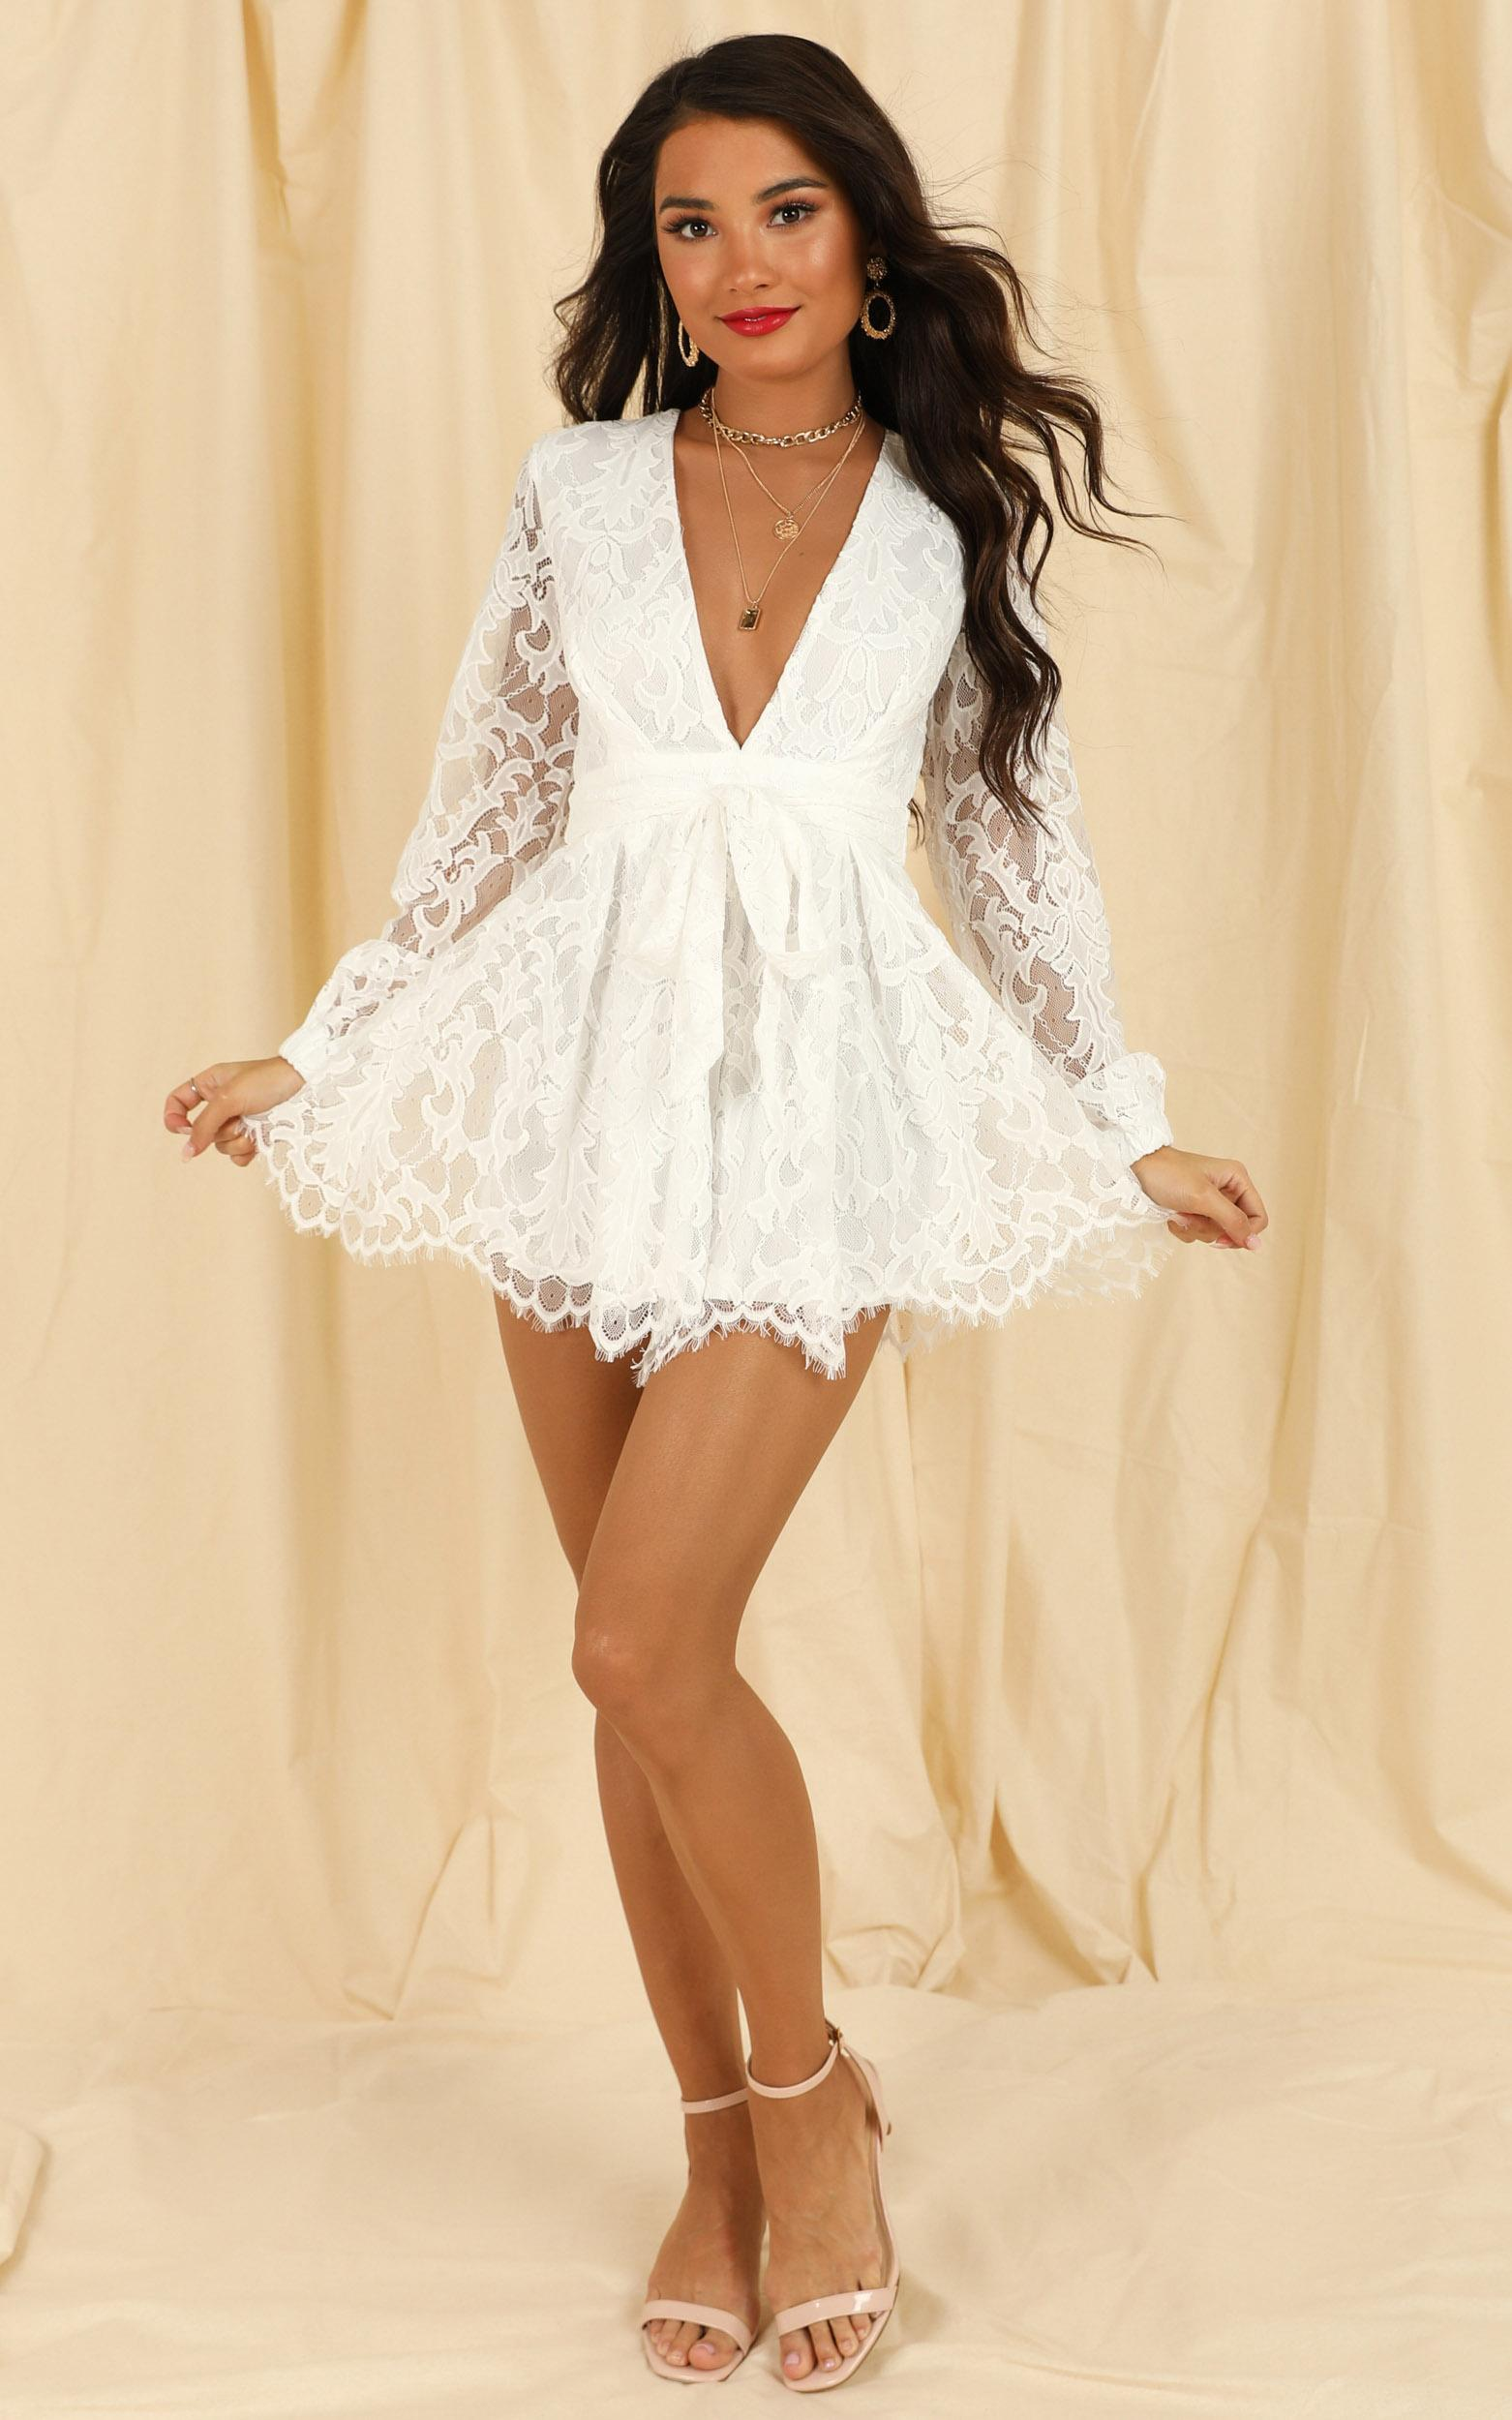 Come Go With Me Playsuit in white lace - 4 (XXS), White, hi-res image number null